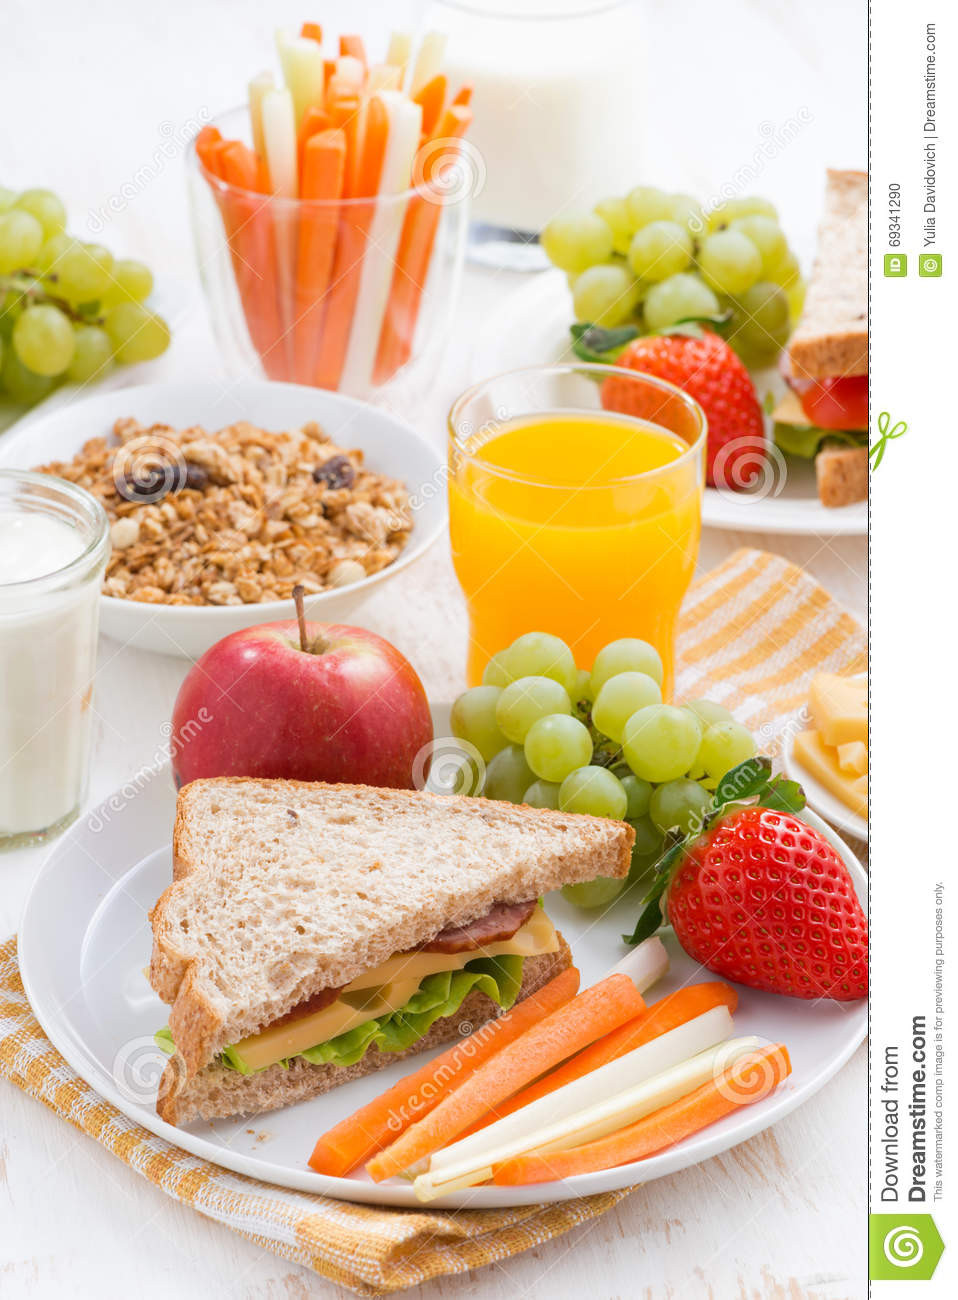 Healthy Breakfast For School  Healthy School Breakfast With Fruits And Ve ables